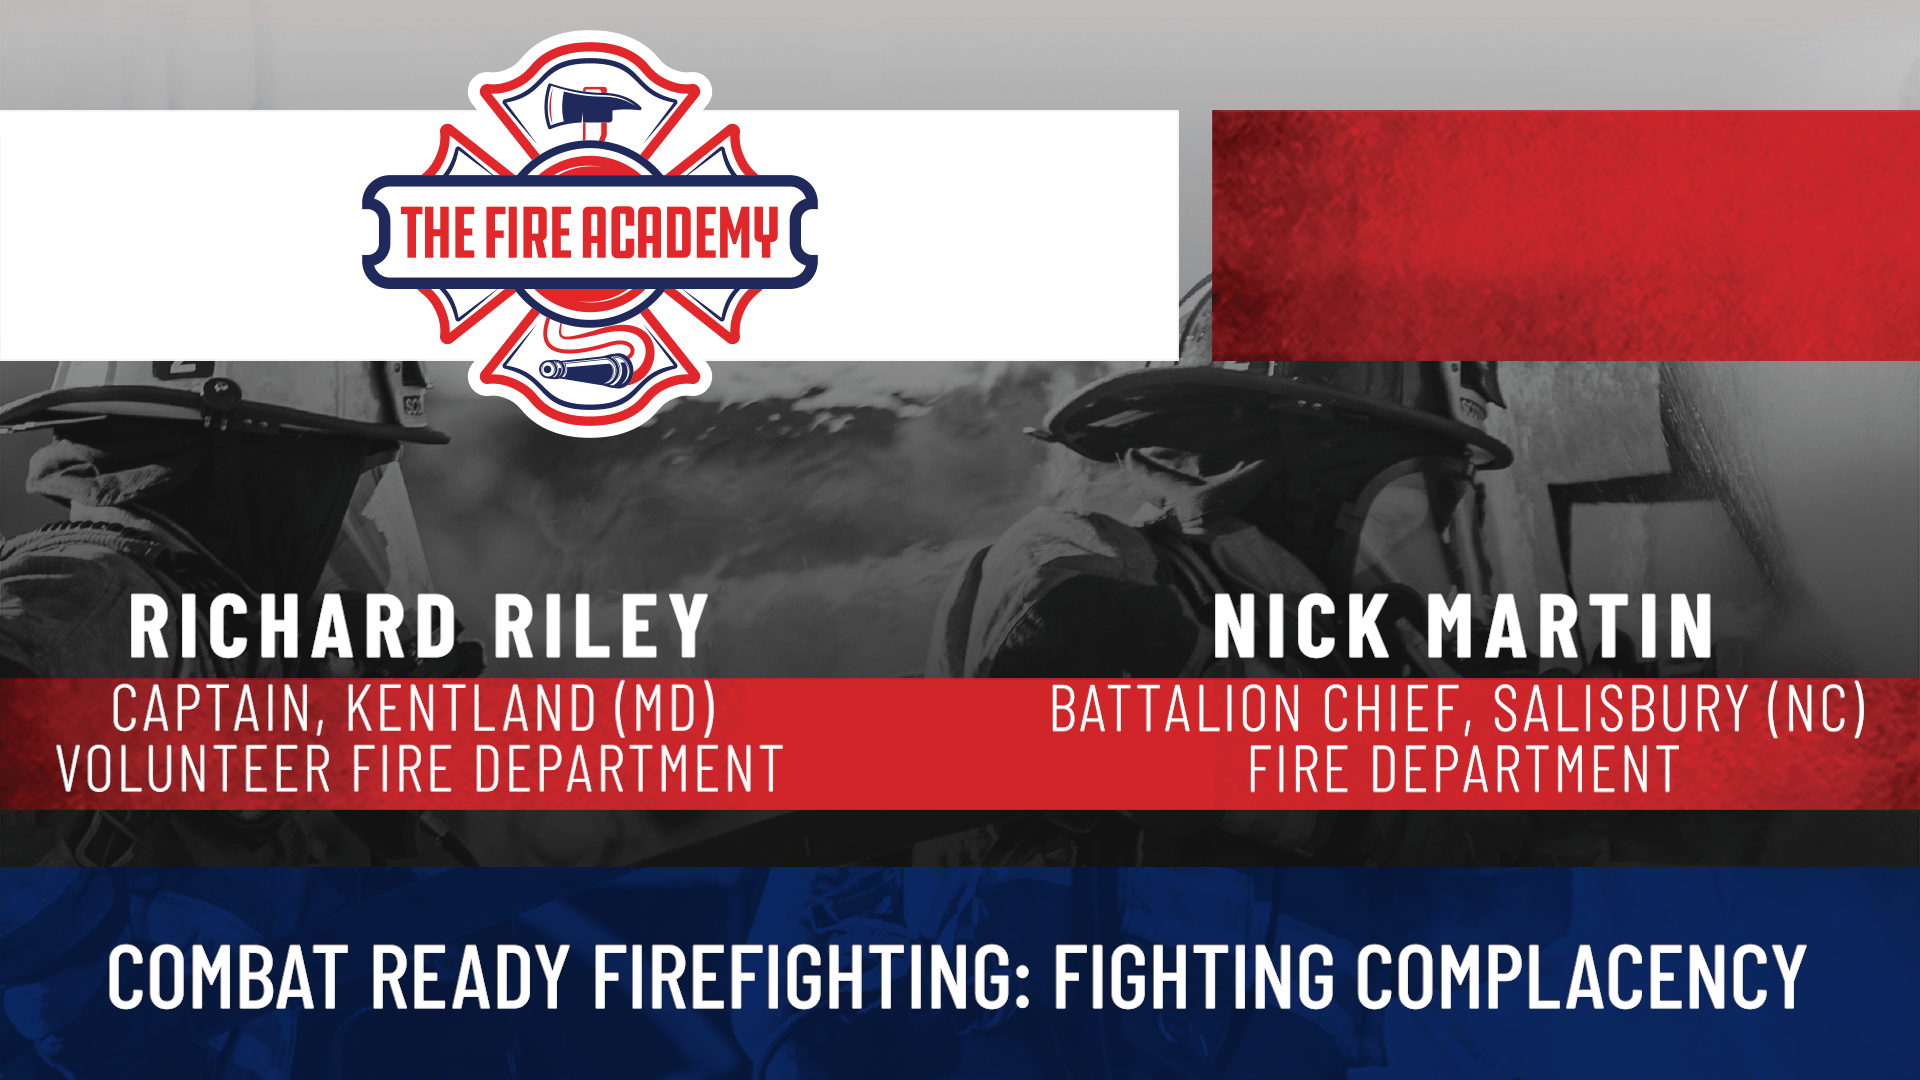 Combat Ready Firefighting: Fighting Complacency